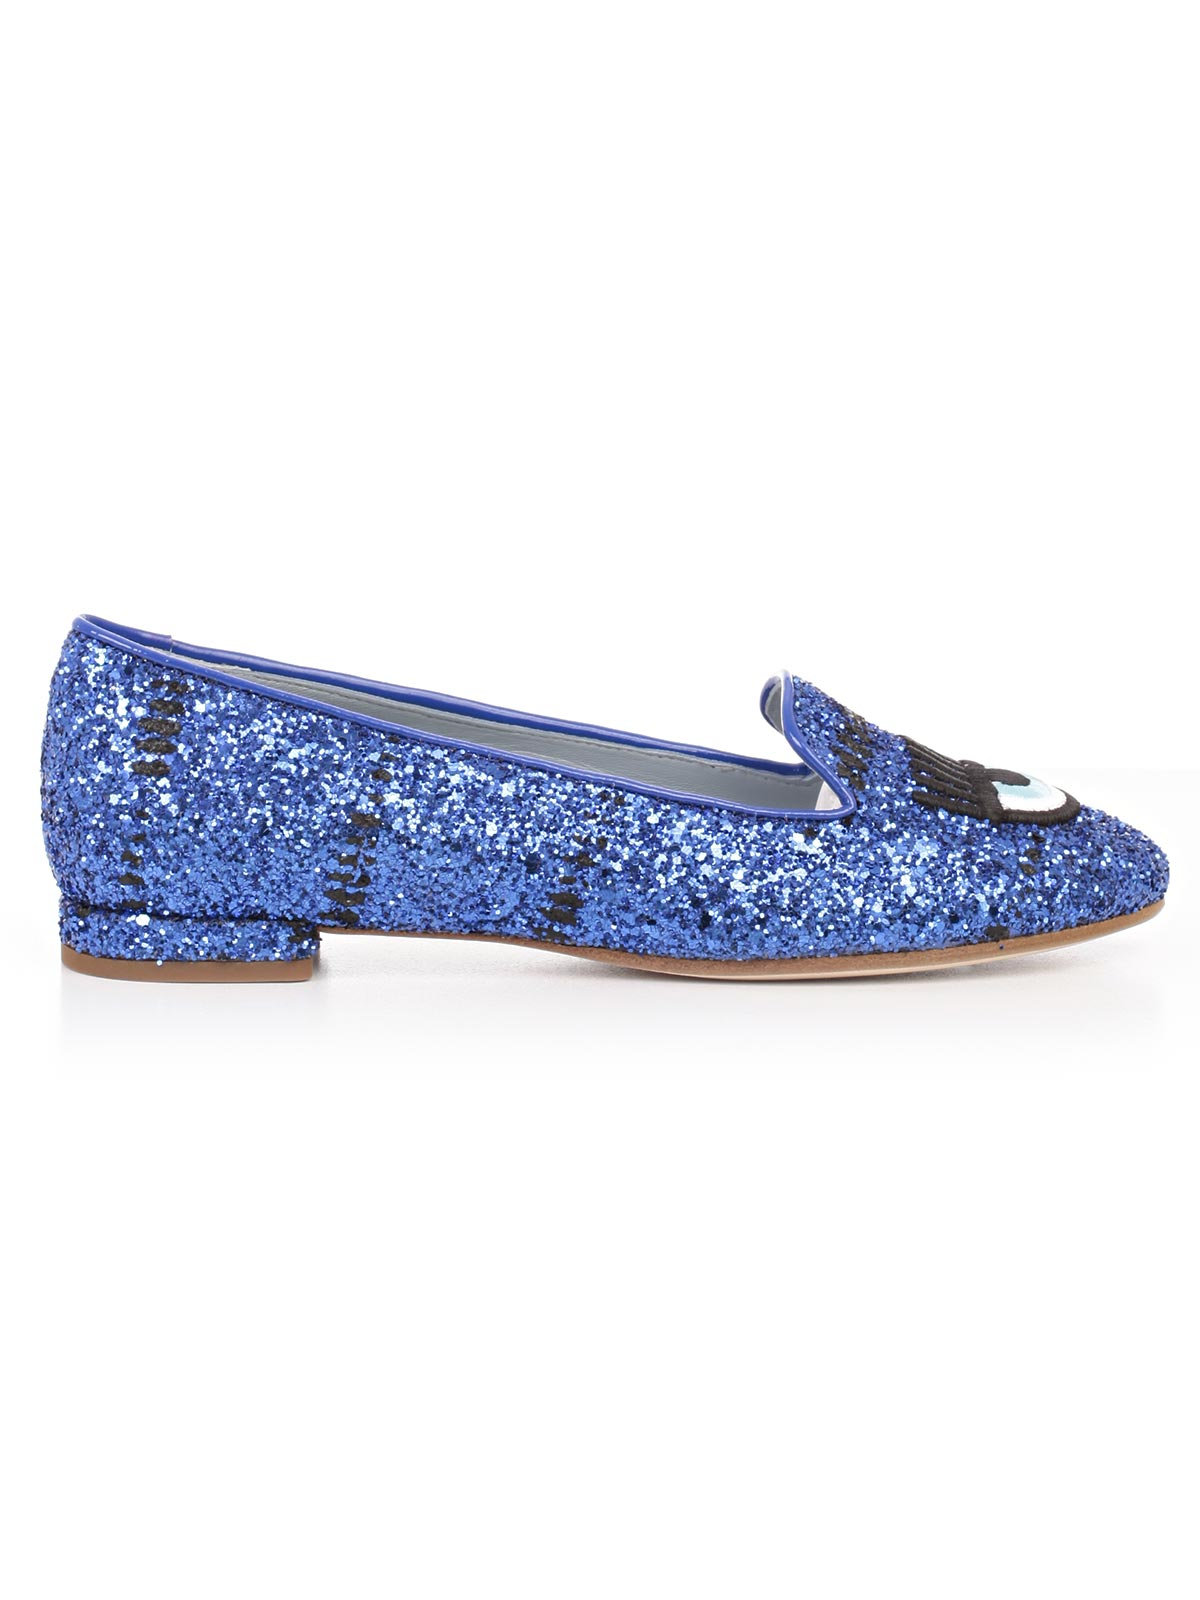 Picture of CHIARA FERRAGNI  FOOTWEAR SCARPA SLIPPERS